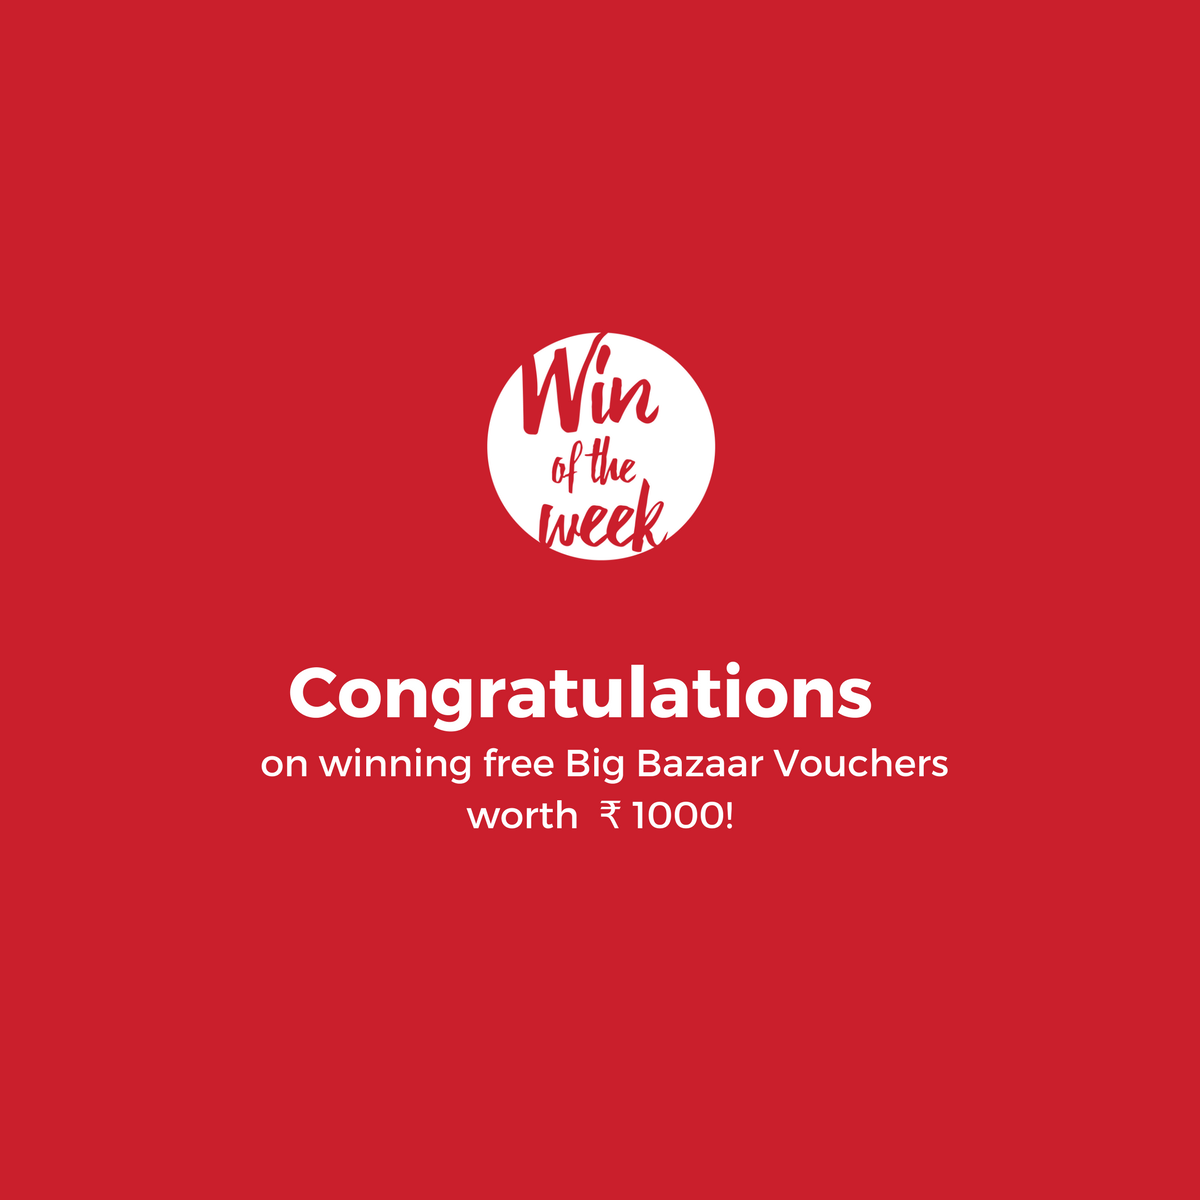 Winners - Free Big Bazaar Vouchers - Win of the Week